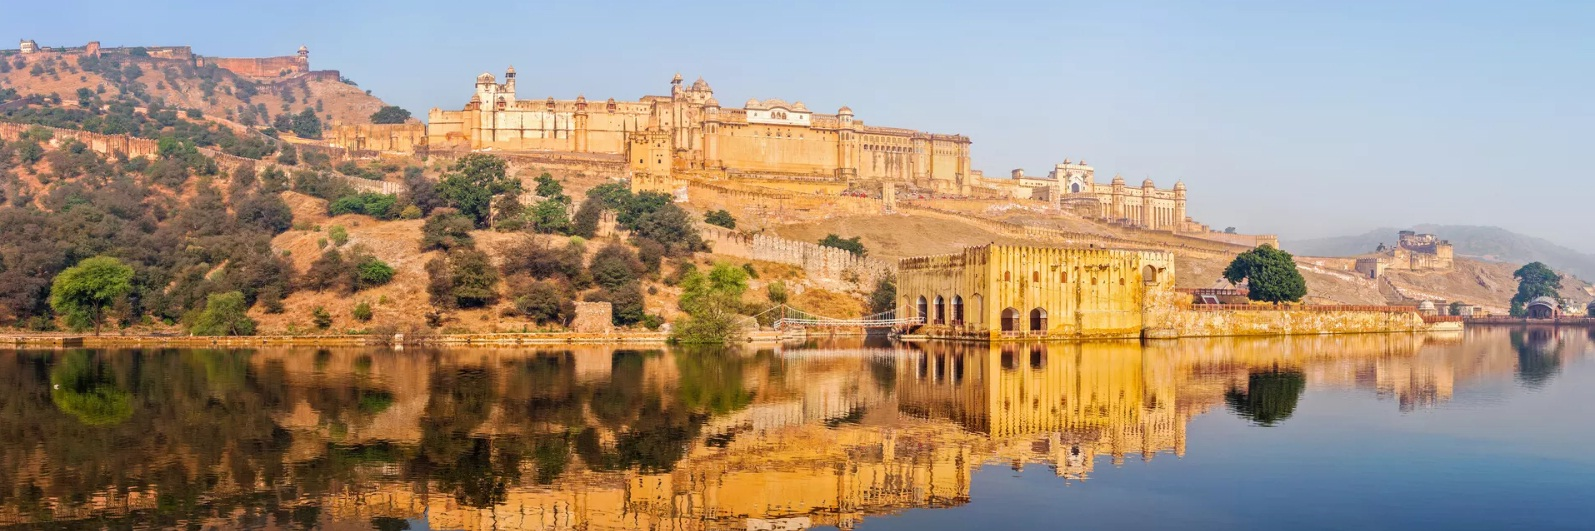 5 Days - Rajasthan Tour - Covering Jaipur, Pushkar, Mount Abu